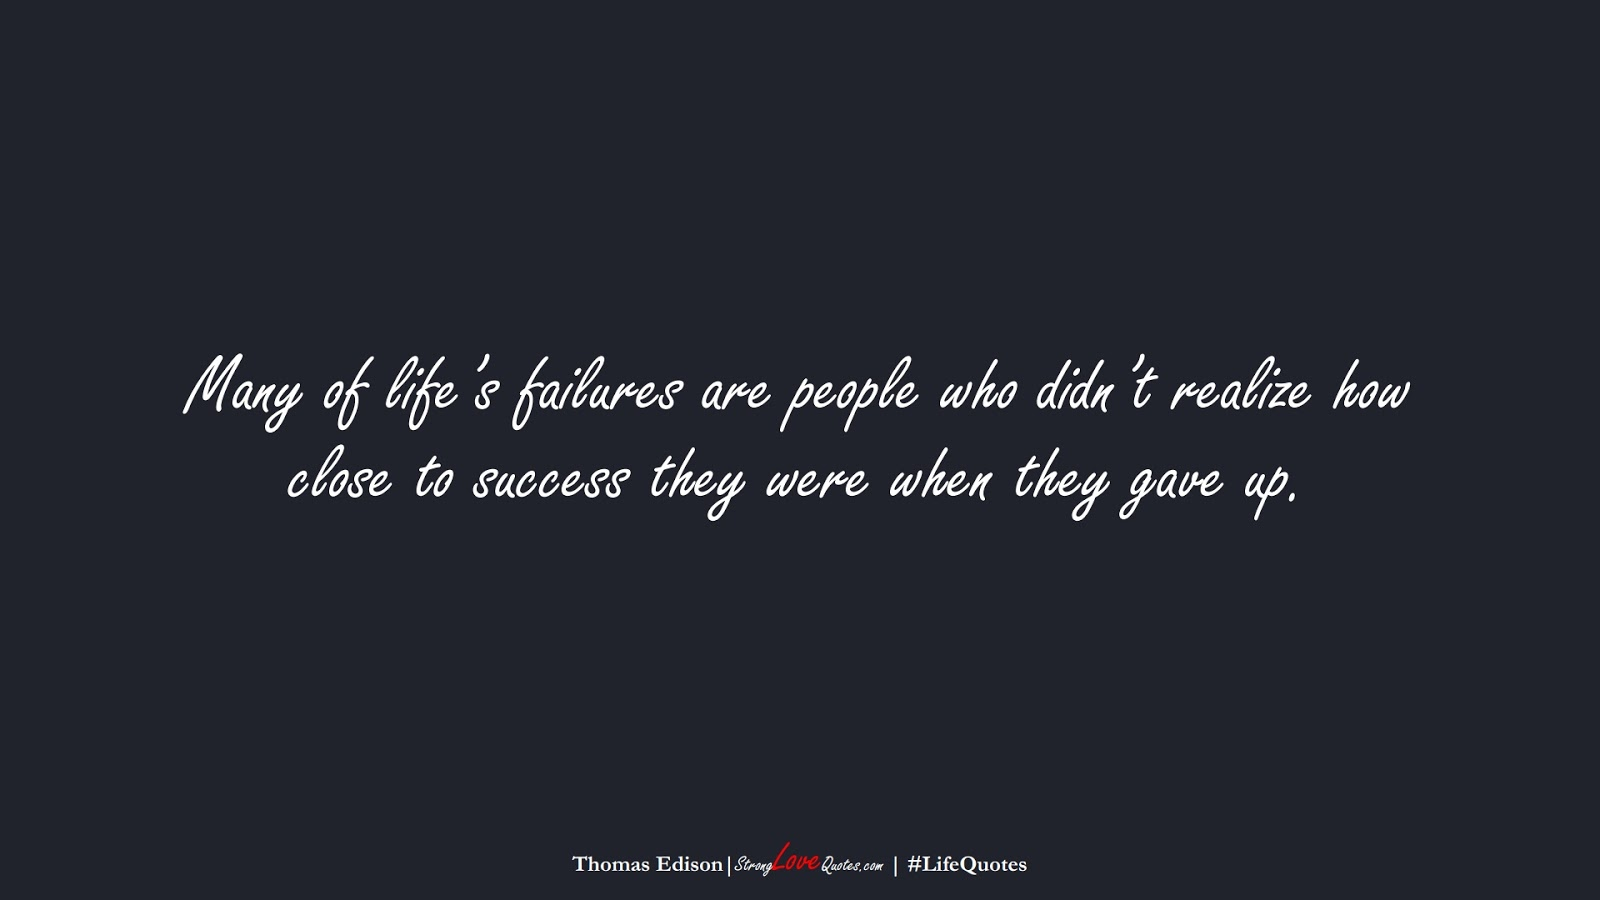 Many of life's failures are people who didn't realize how close to success they were when they gave up. (Thomas Edison);  #LifeQuotes